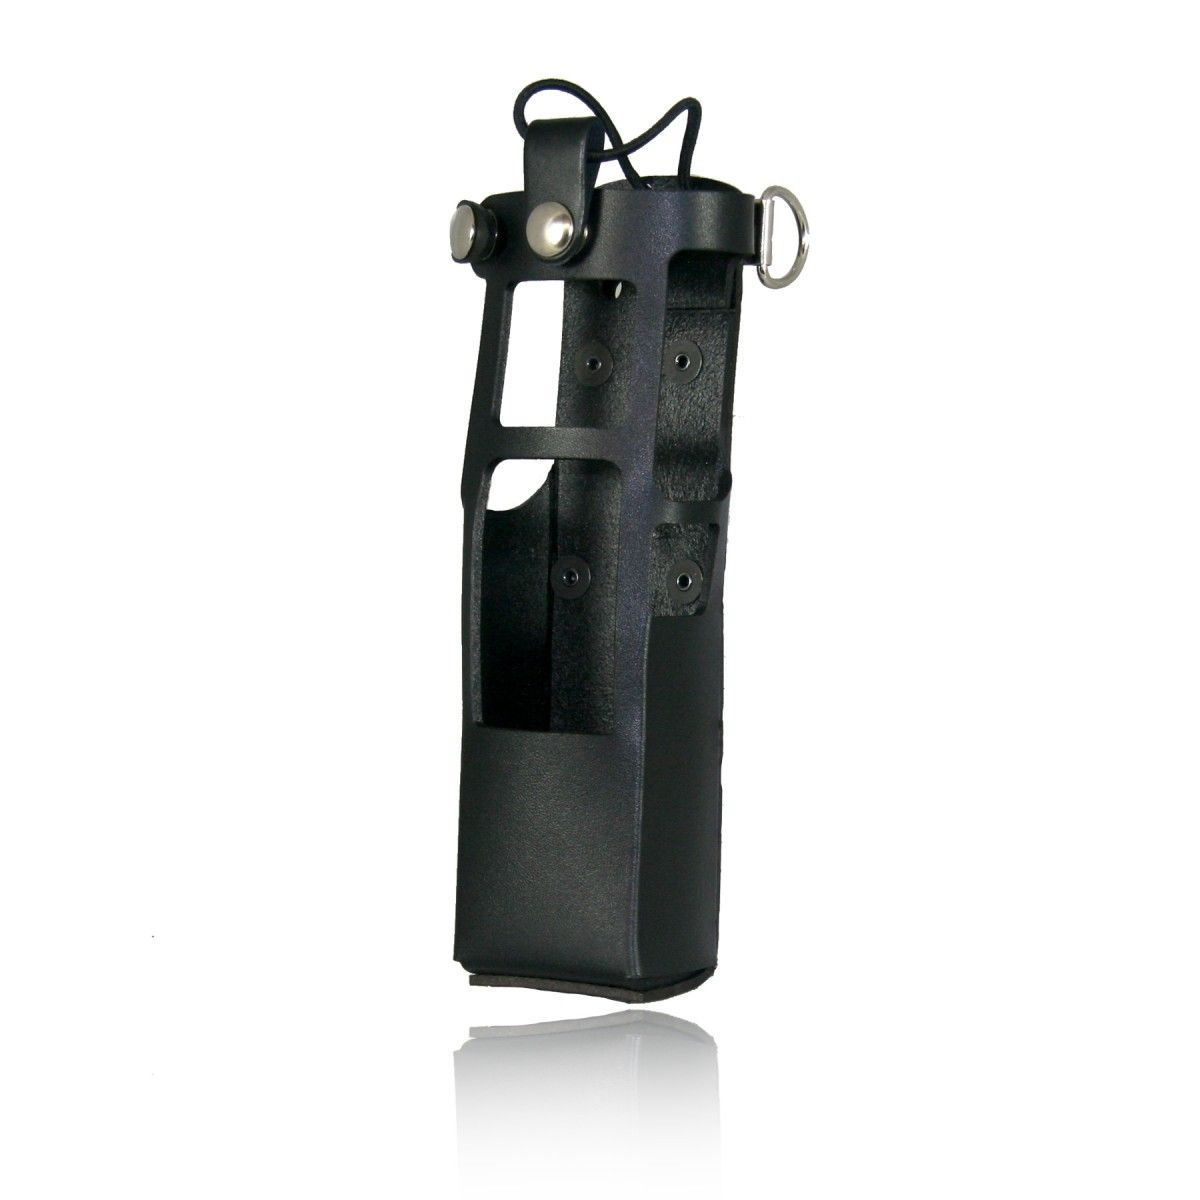 Firefighter's Radio Holder for Motorola APX 7000 Extended Battery